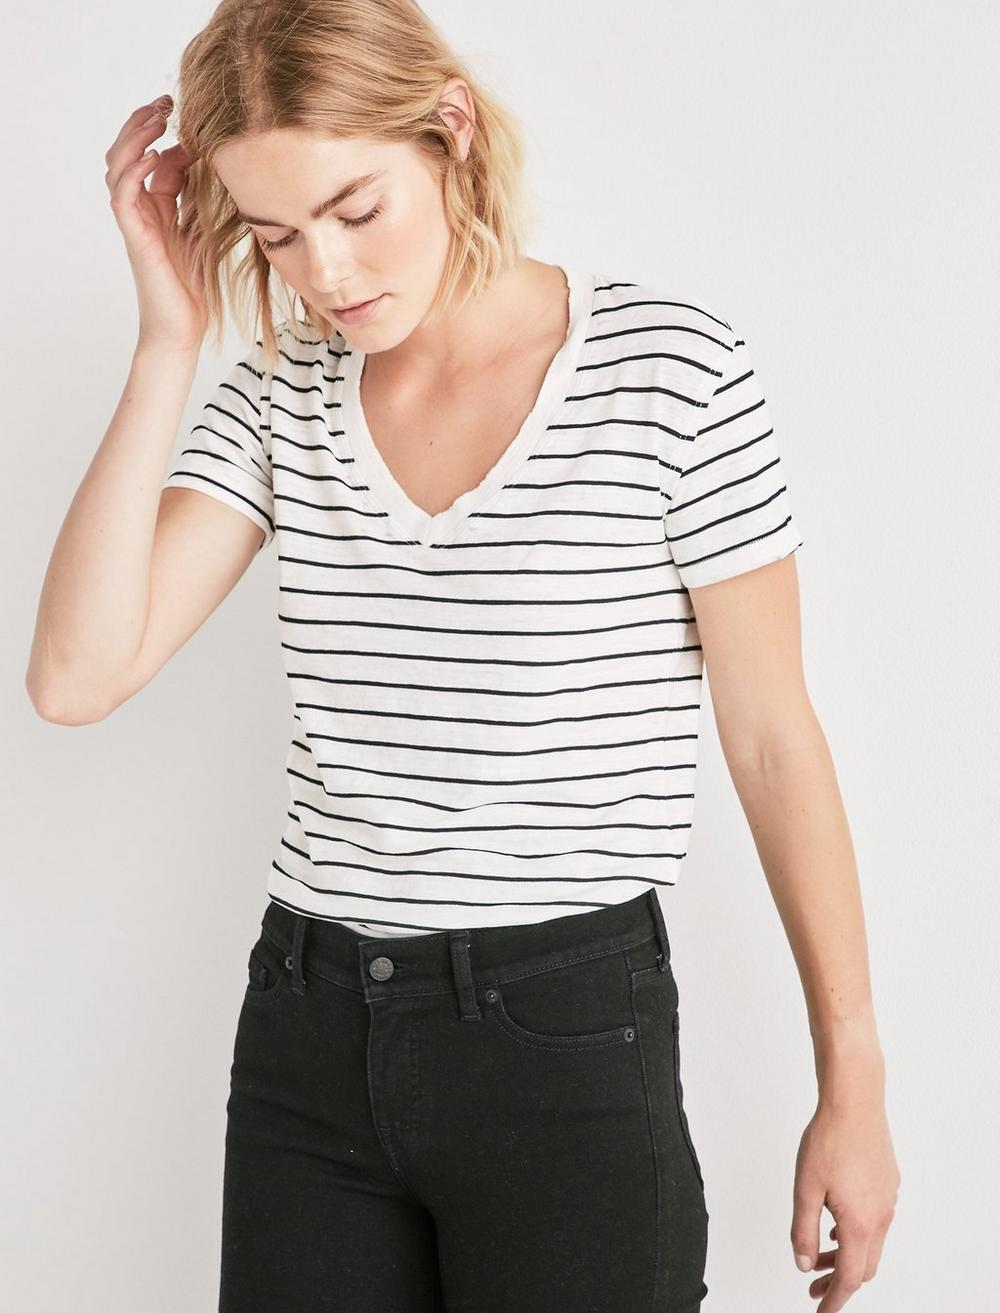 THE ANGELES V NECK STRIPED TEE., image 1